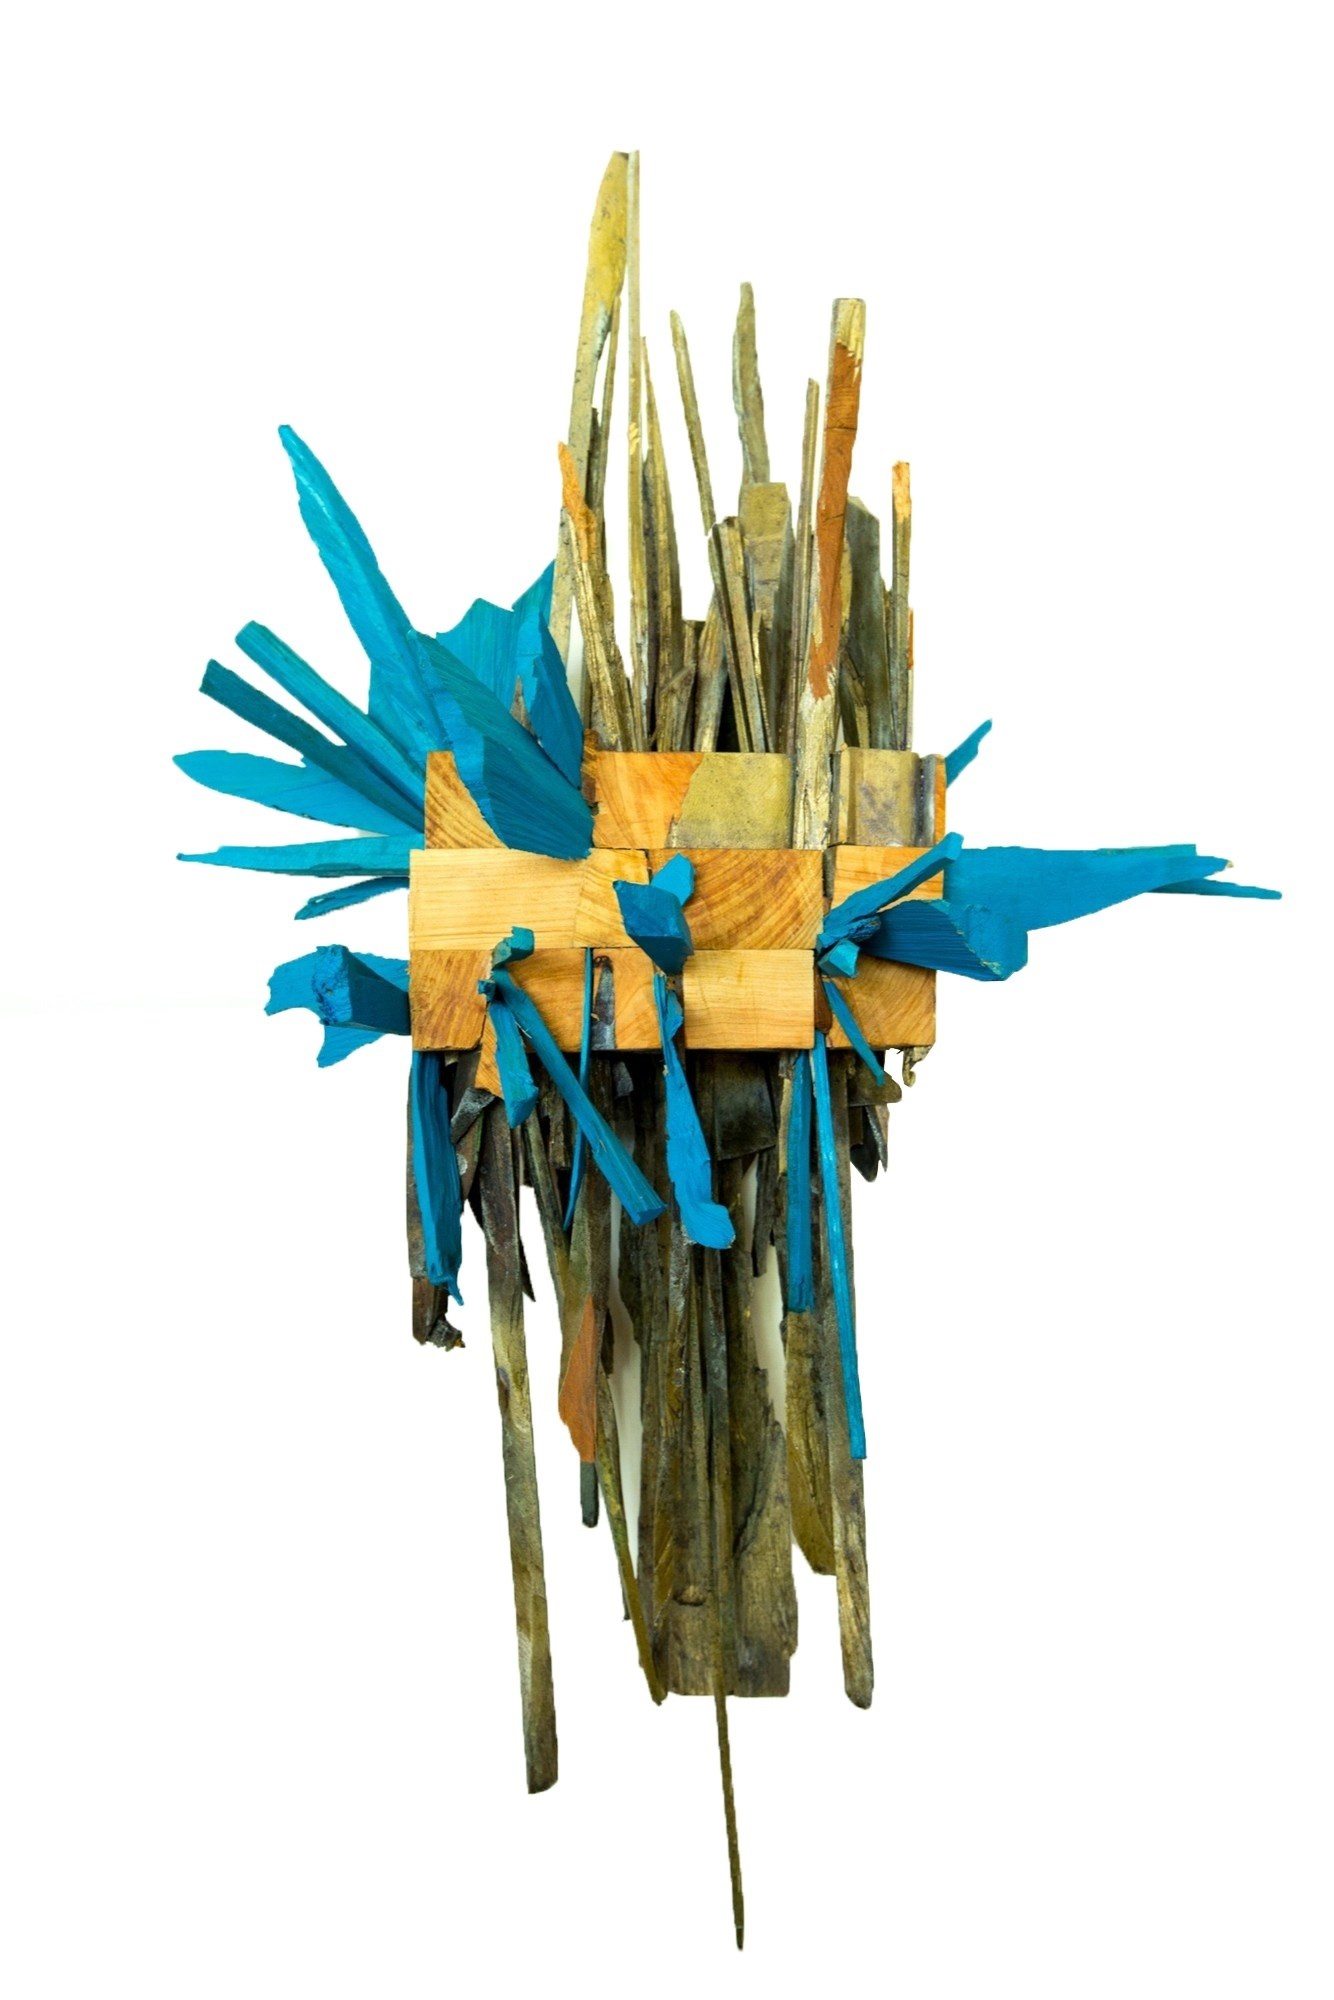 Rebentos que Brotam no Inverno II, original Abstract Wood Sculpture by Miguel  Neves Oliveira